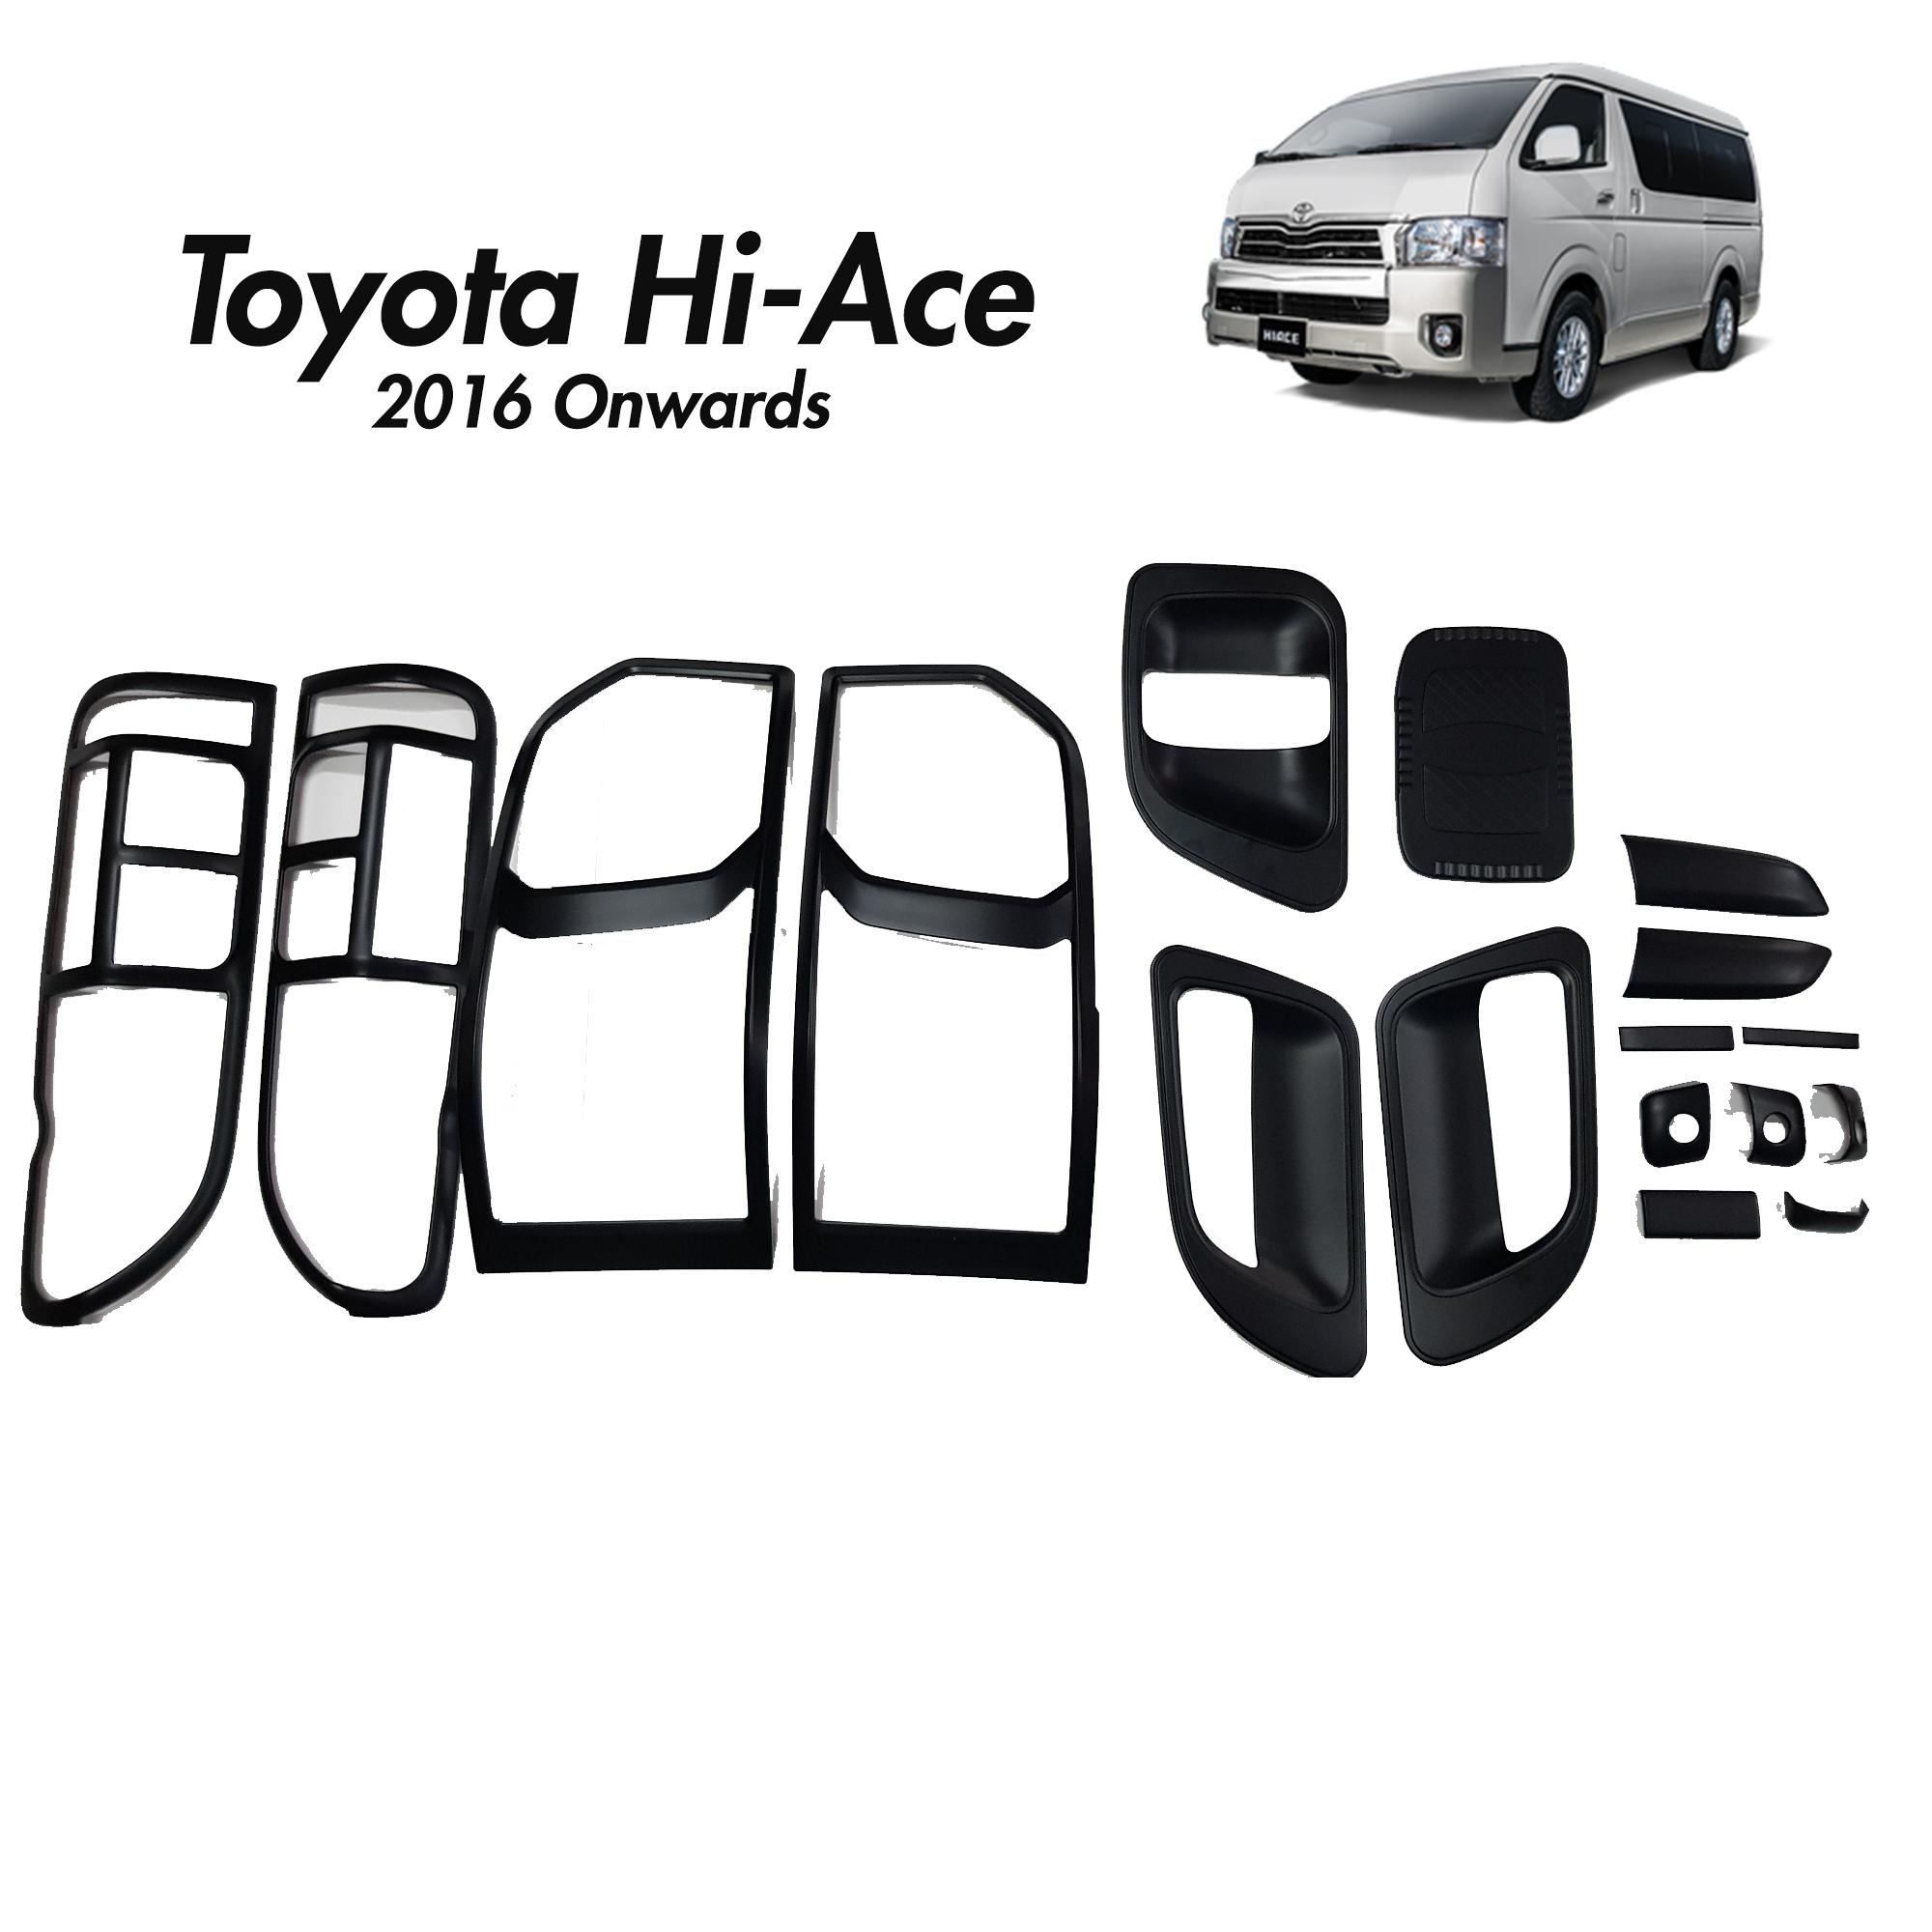 Toyota Philippines Price List Car Parts Accessories For Wiring Diagram Rush Hi Ace 2016 2019 Cover Set Matte Black